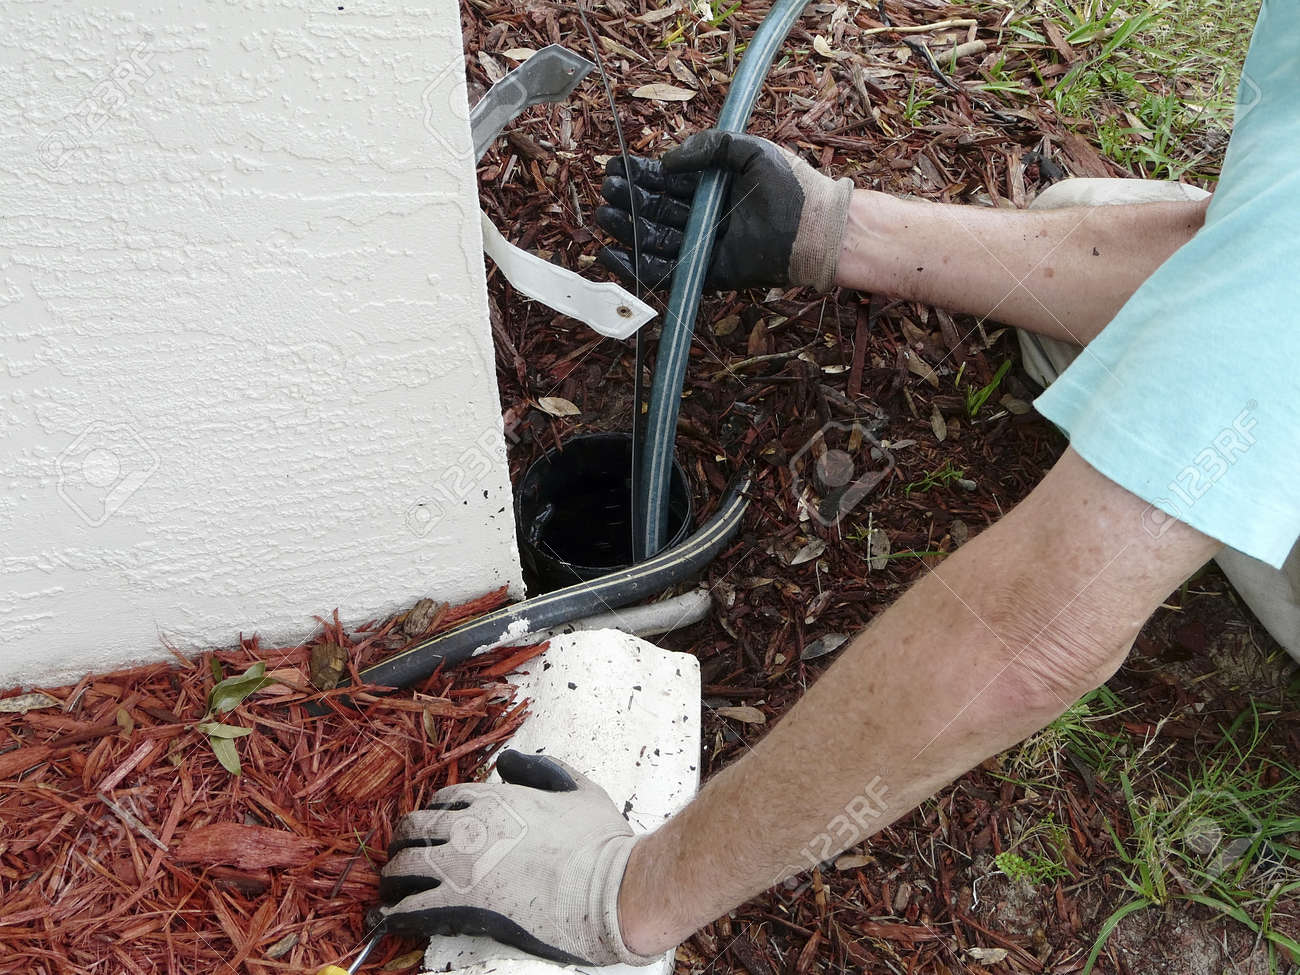 Homeowner uses sewer snake or rod to clear a blockage of dirt and leaves in the & Homeowner Uses Sewer Snake Or Rod To Clear A Blockage Of Dirt ...